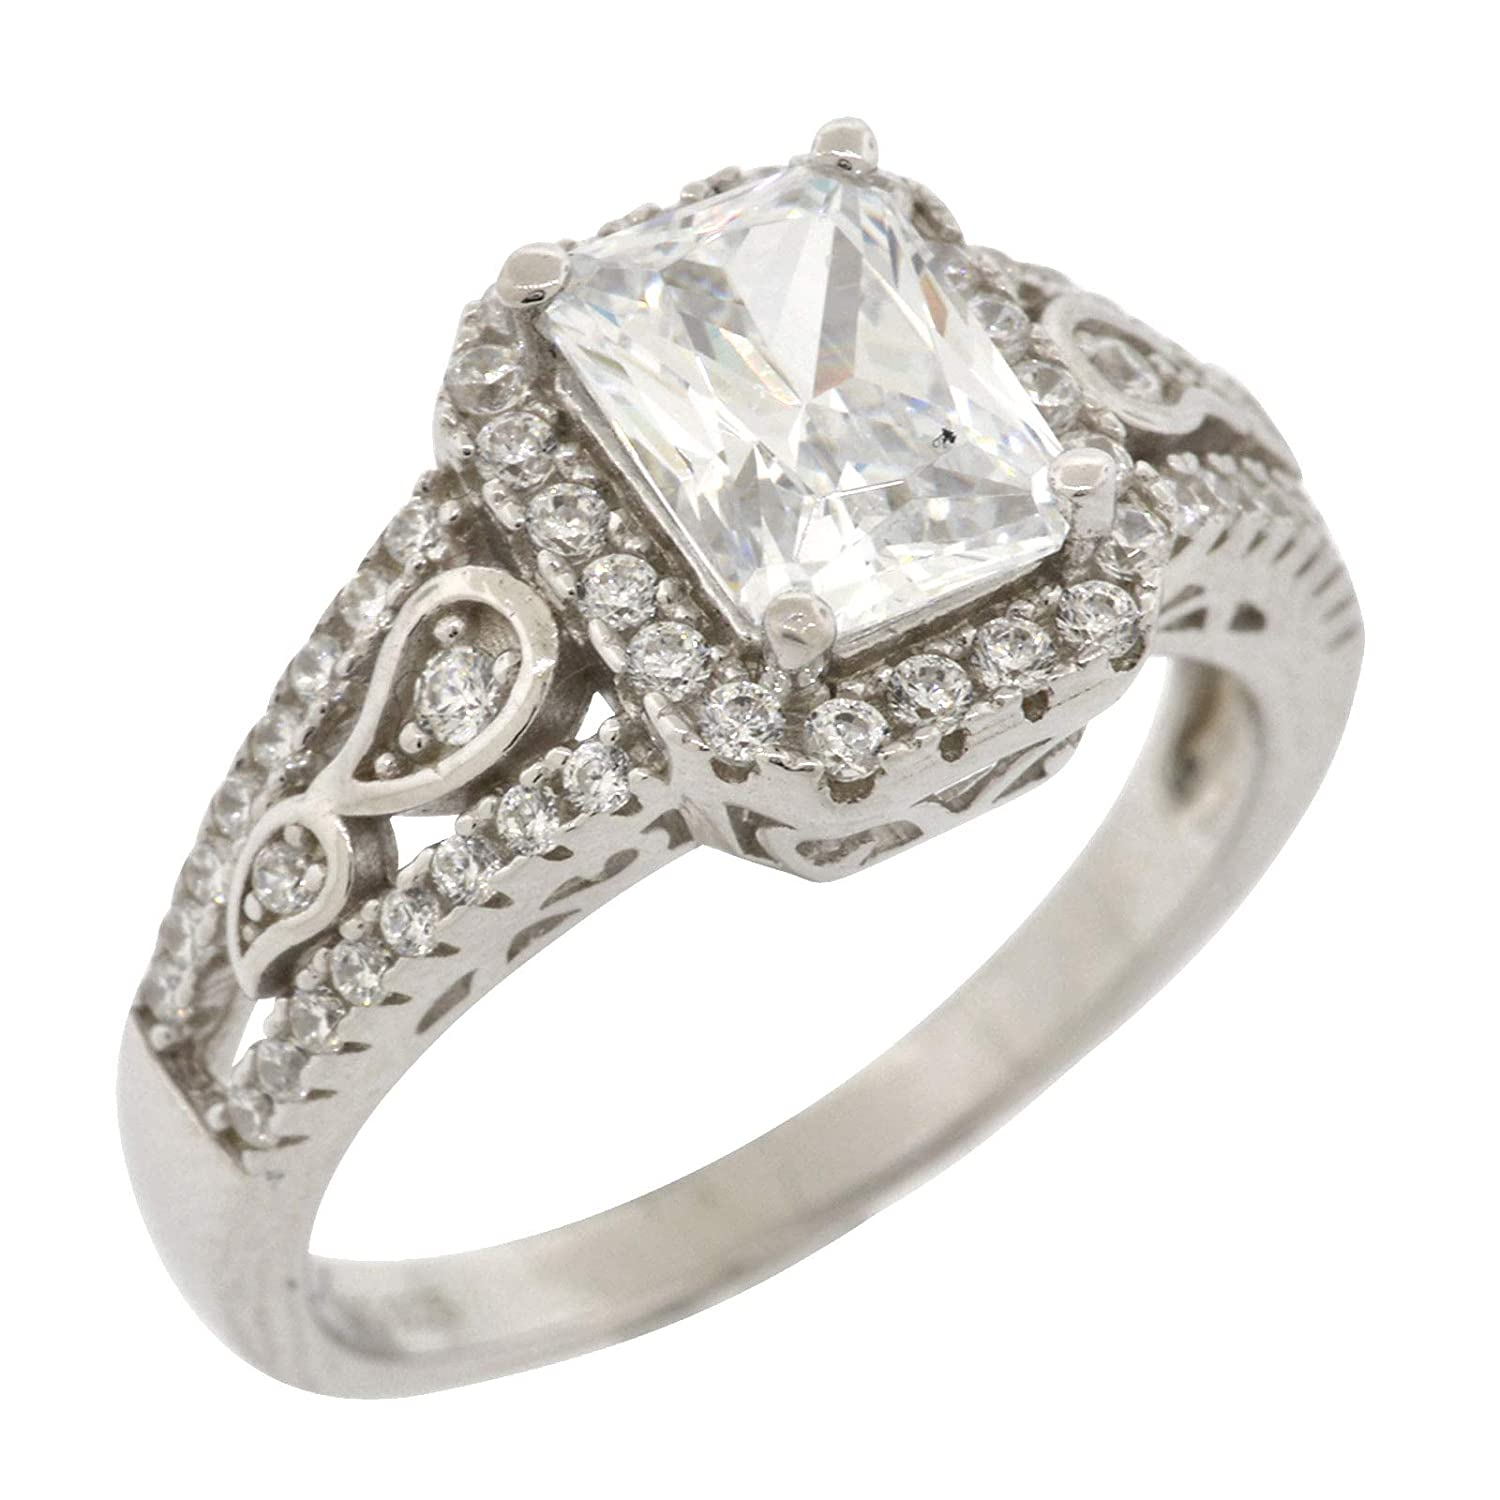 Size 8 Rhodium-Plated Sterling Silver Emerald and Round Cut Cubic Zirconia Solitaire with Halo and Accented Shank Engagement Ring